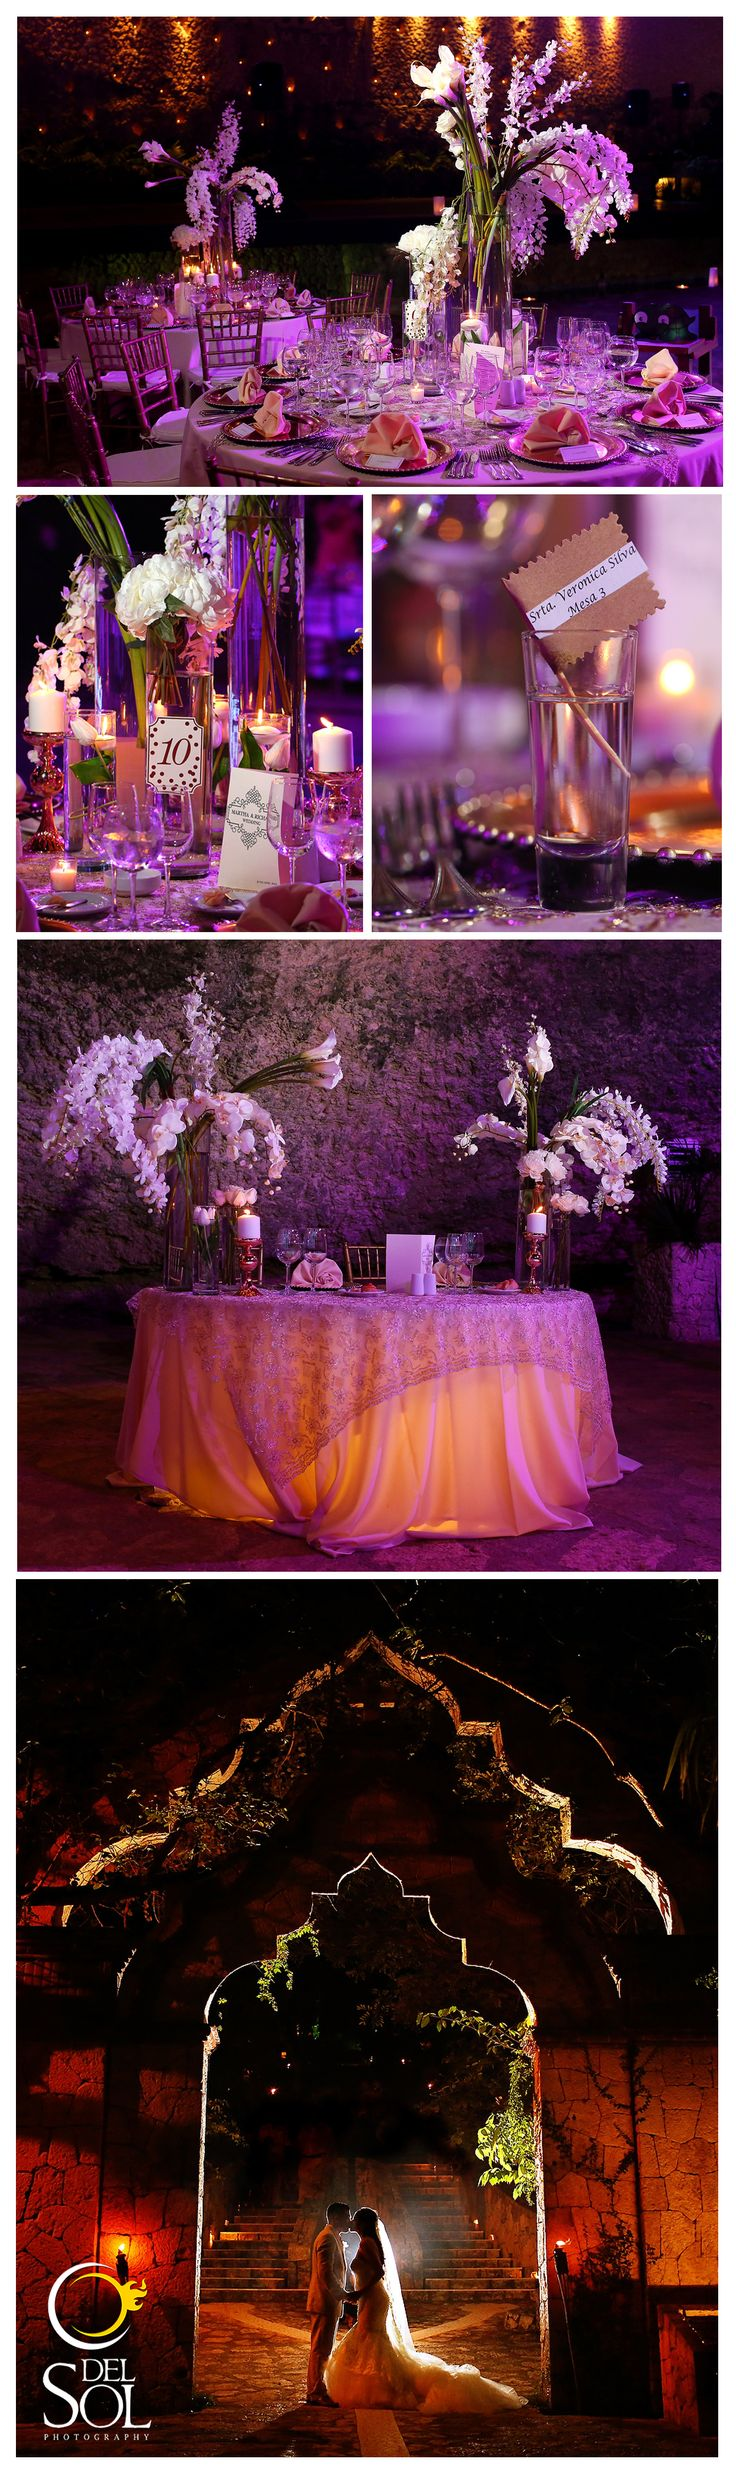 Beautiful, luxurious table set ups with cute tequila place names.  Wedding reception at La Isla Restaurant, Xcaret, Playa del Carmen Mexico